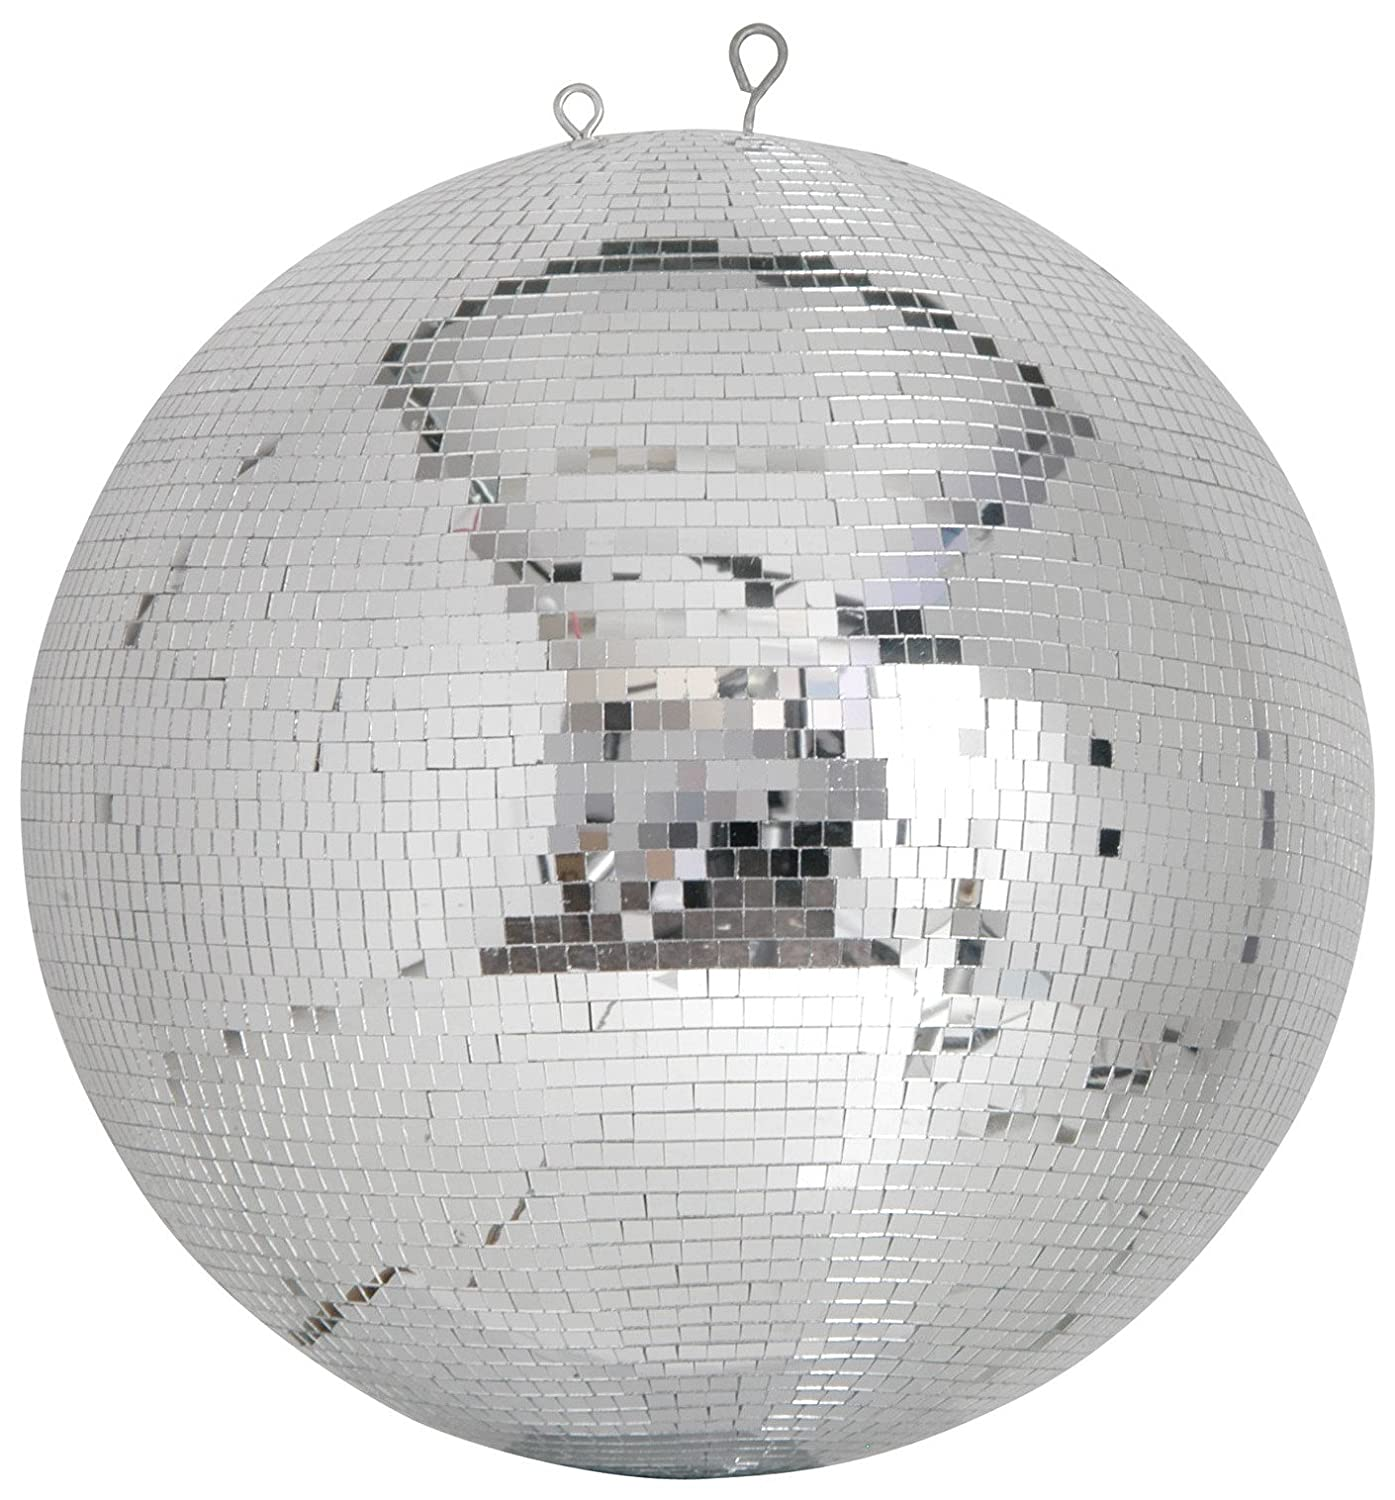 Professional Mirror Ball | 7mm x 7mm tiles | 40cmØ qtx 151.413UK qtx  Professional Mirrorball 40cmØ - creates the best effects when hung from a height